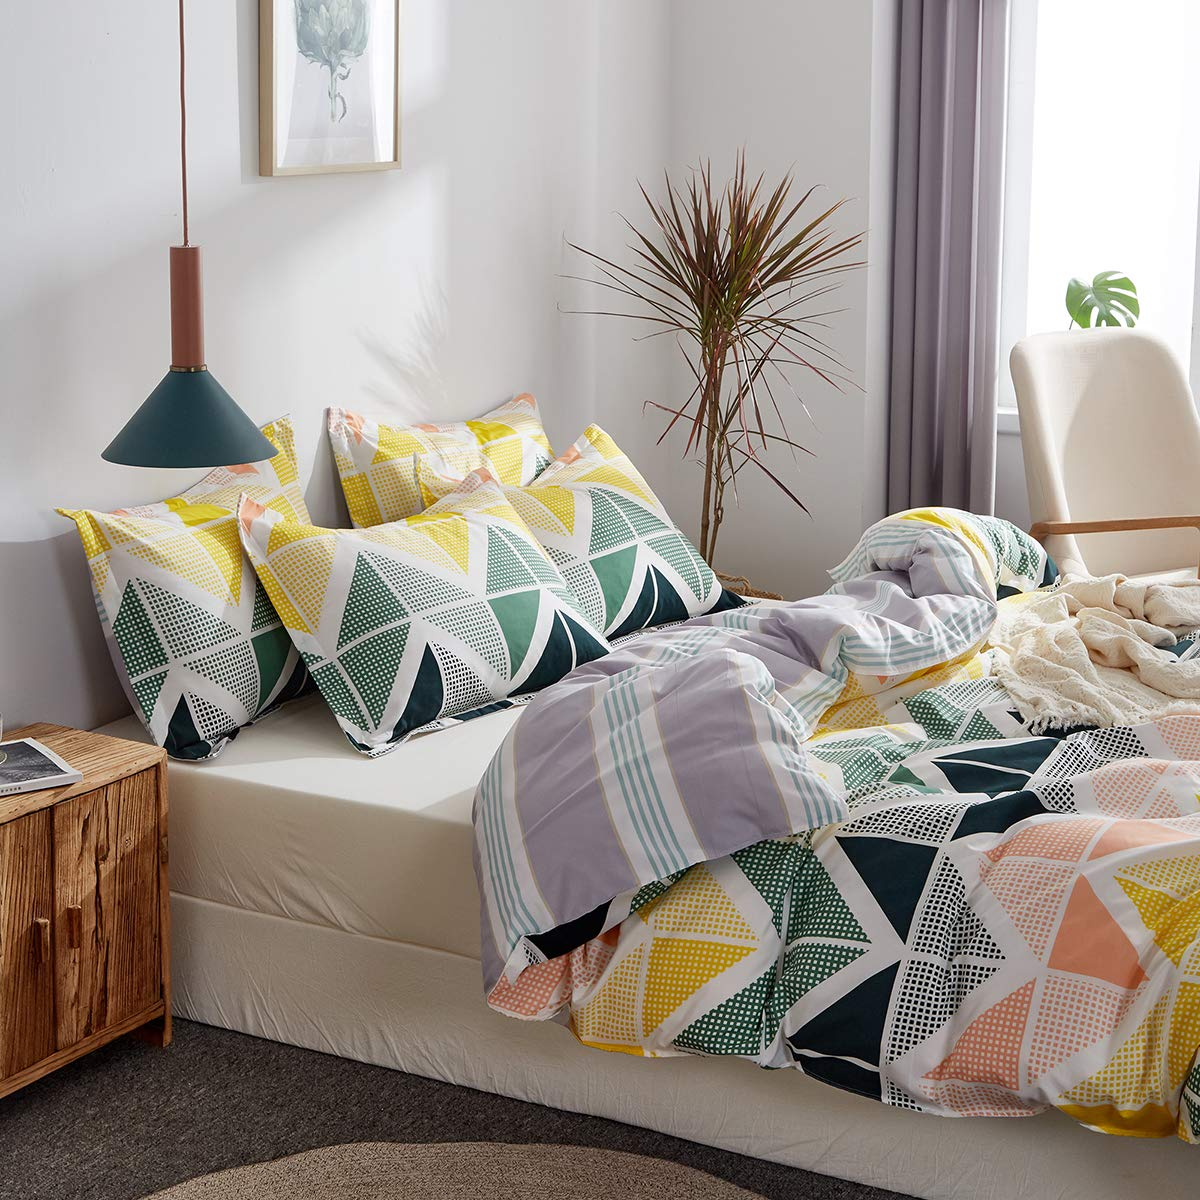 Uozzi Bedding 3 Pieces Colorful Duvet Cover Set Queen Green Navy Yellow Orange Cubes Pattern Microfiber Comforter Cover with Ties and Zipper Morden Style Adult 3PC Bedding Set Not a Comforter